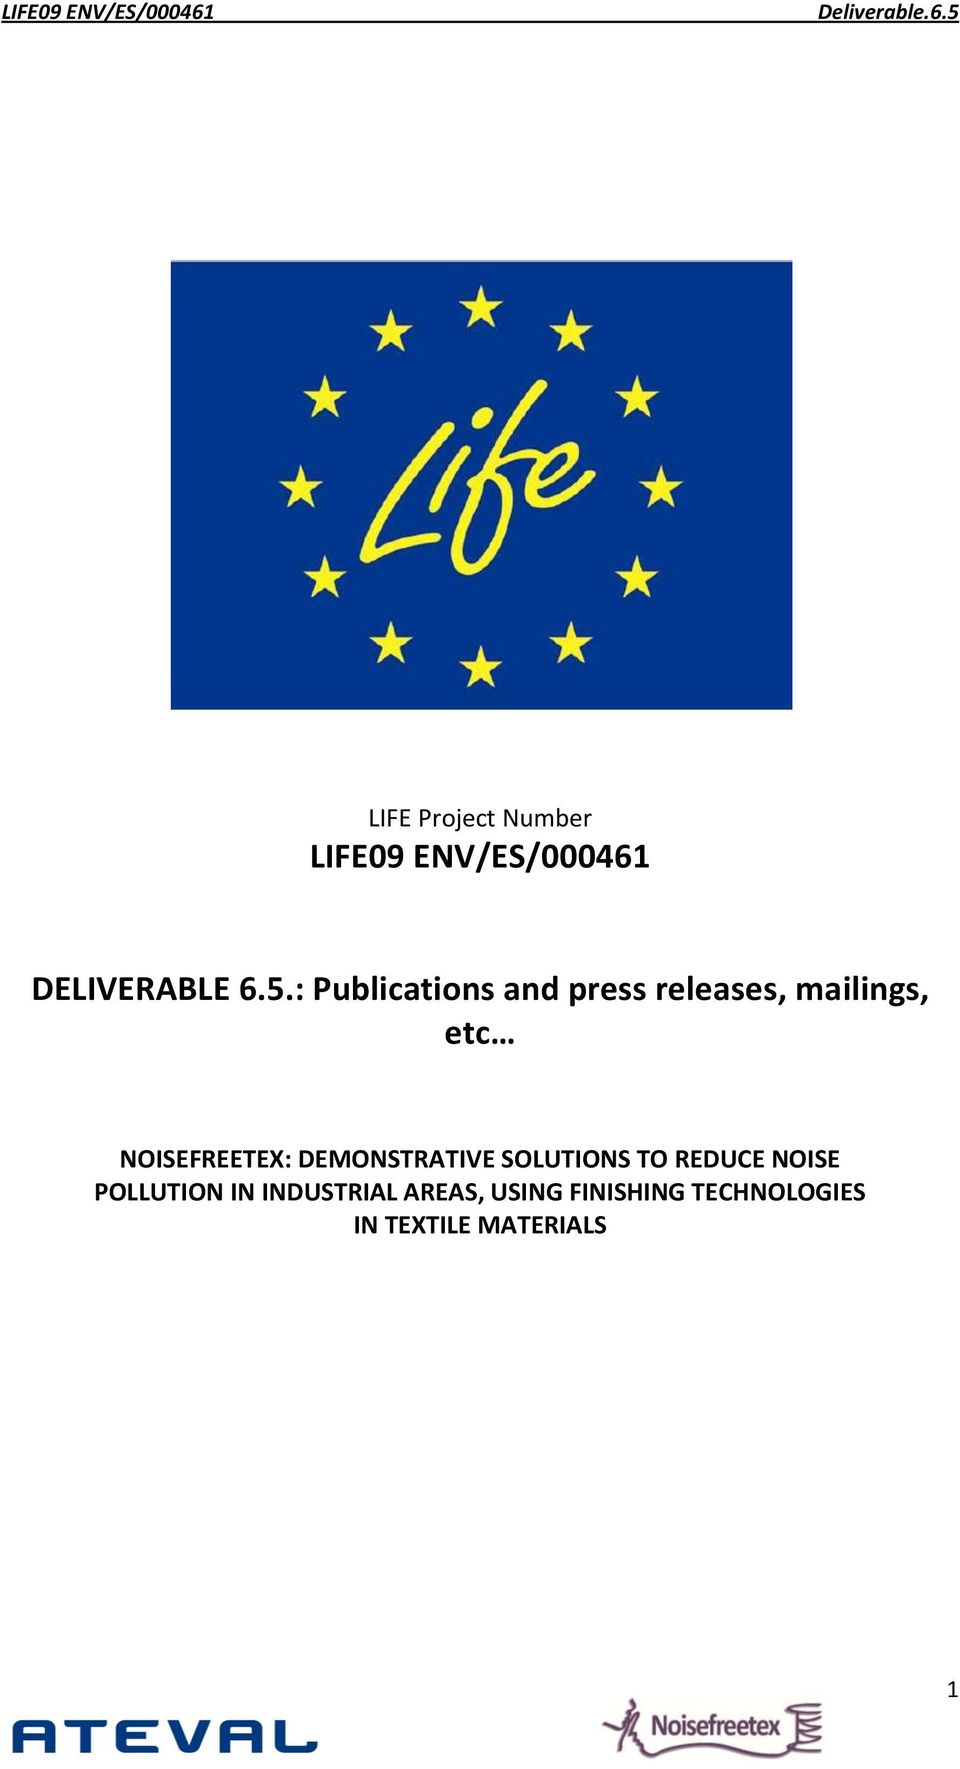 LIFE Project Number  DELIVERABLE 6.5.